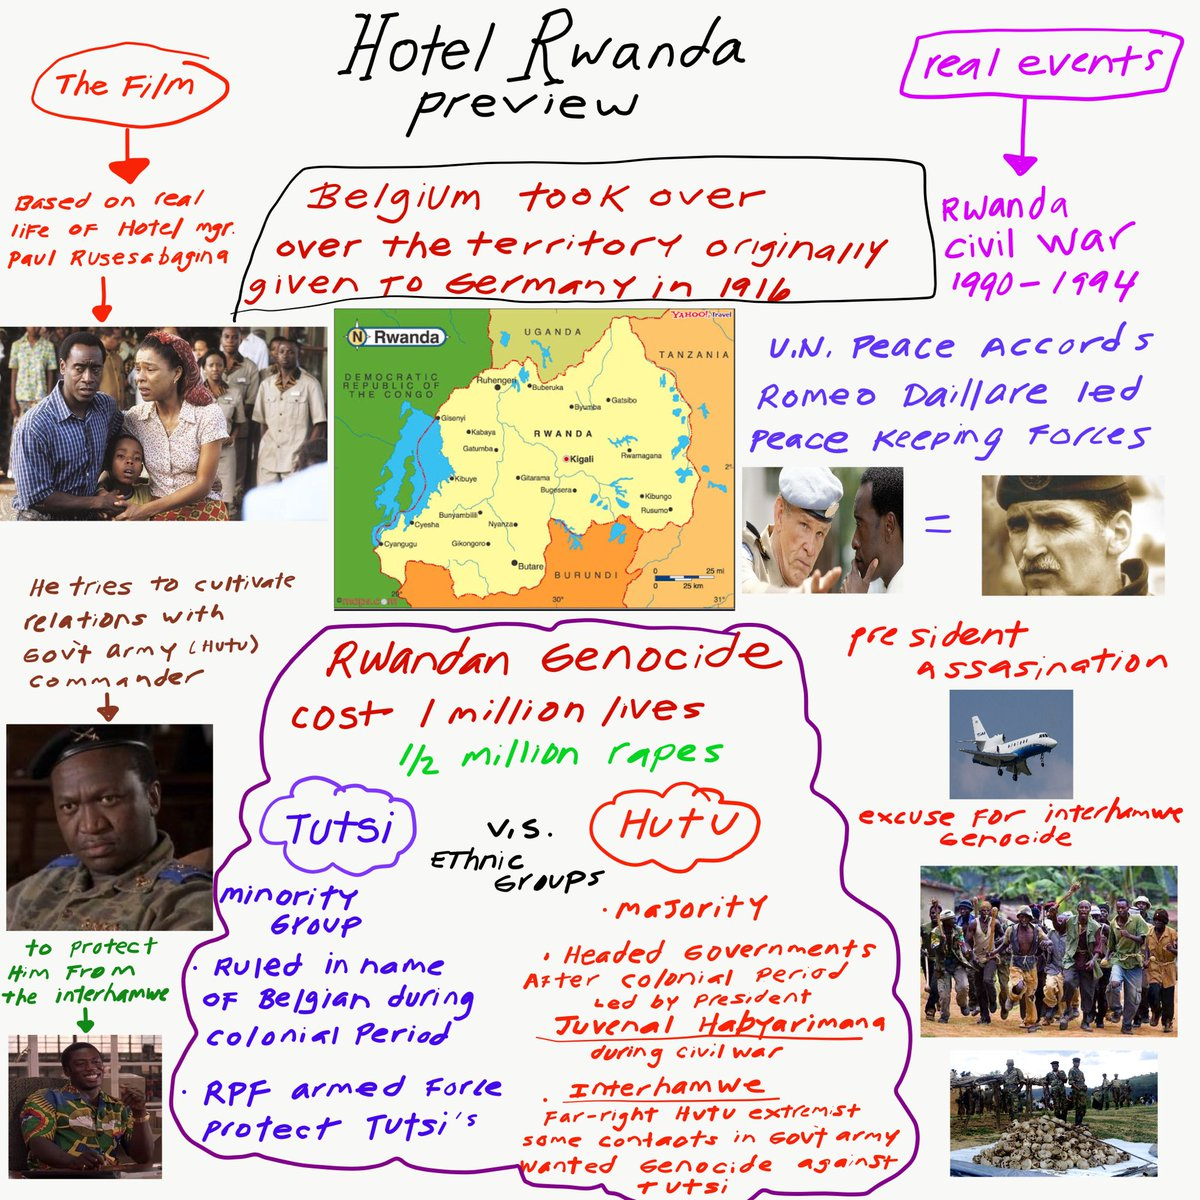 Hotel #Rwanda and #genocide explanation for my students. A reminder of where hatred can lead if we aren't careful . https://t.co/9y4UIYnTXF